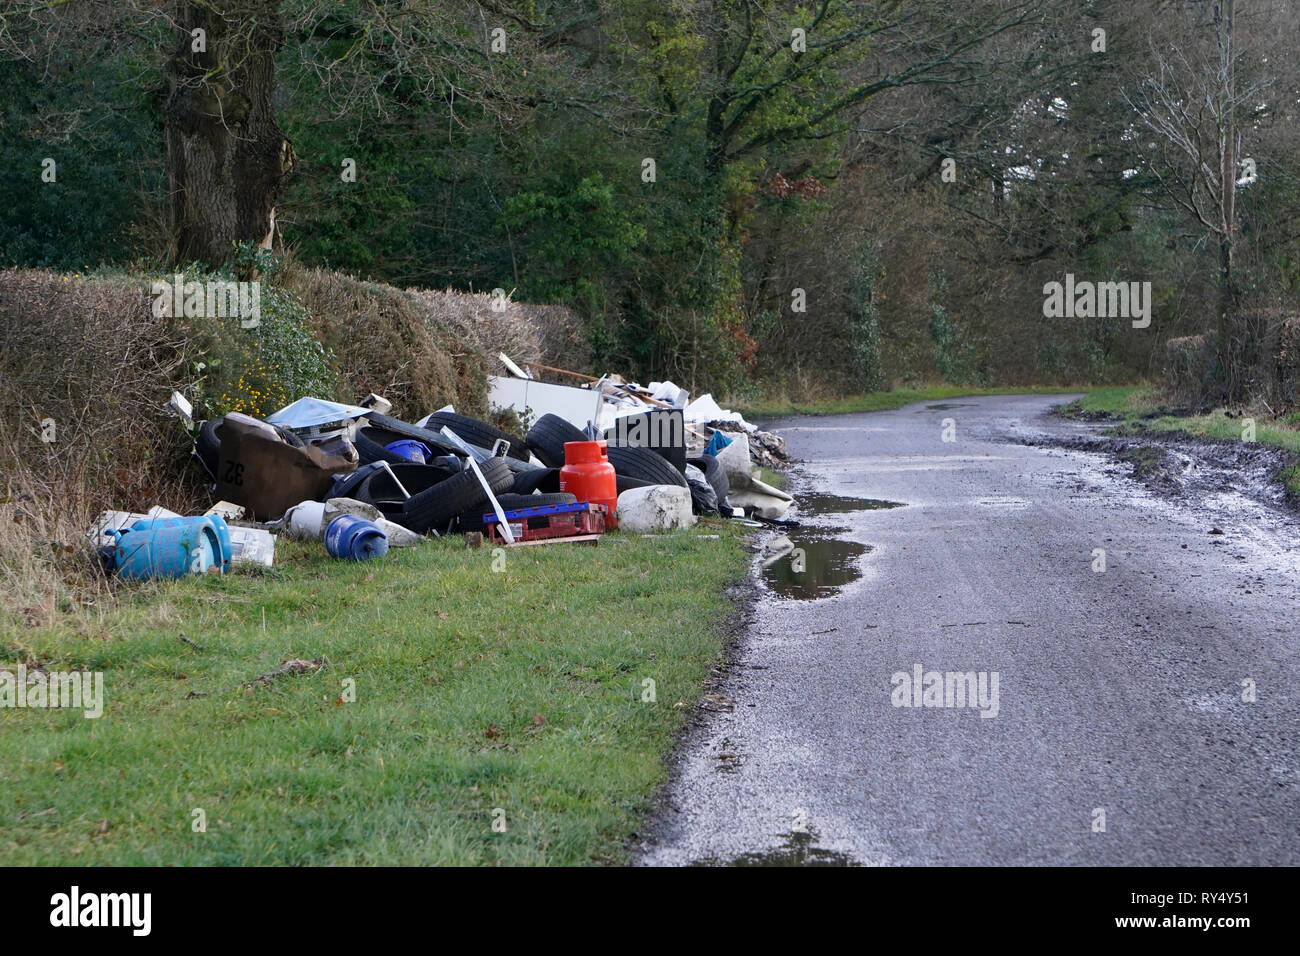 Fly-tipping or illegal waste dumping in a country lane in the UK - Stock Image